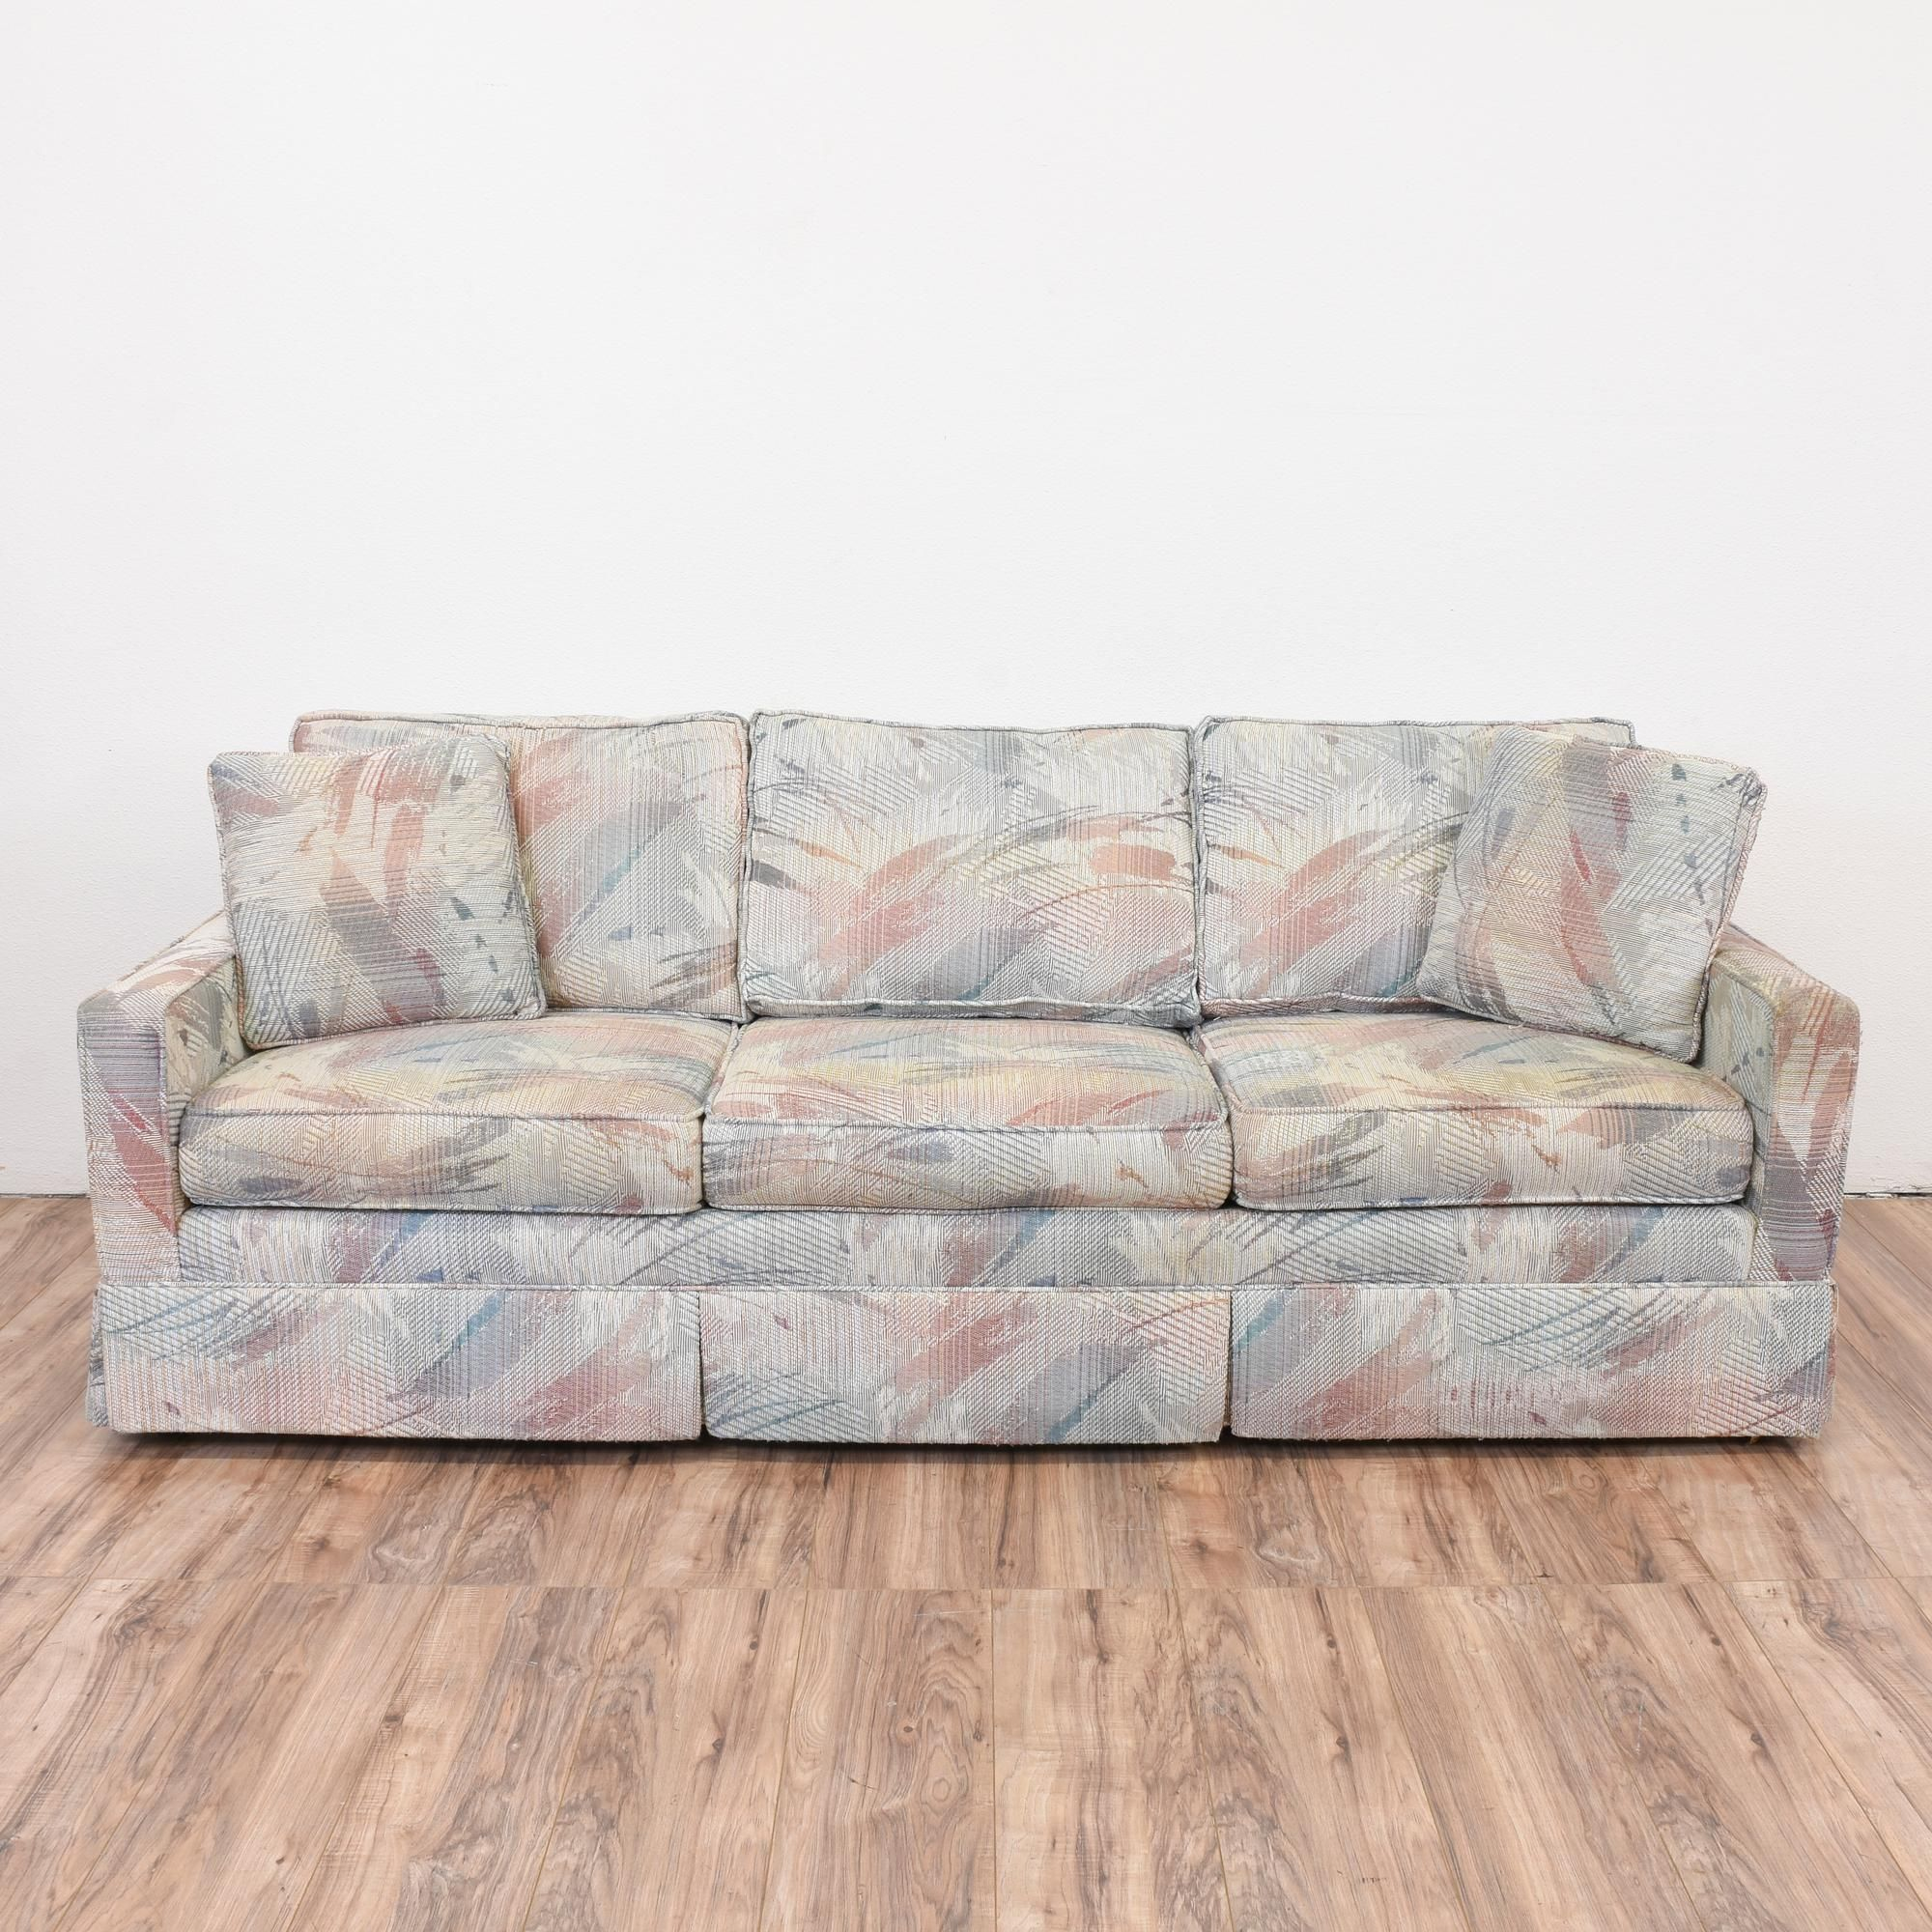 Best This Retro Sofa Is Upholstered In A Durable Light Gray 400 x 300